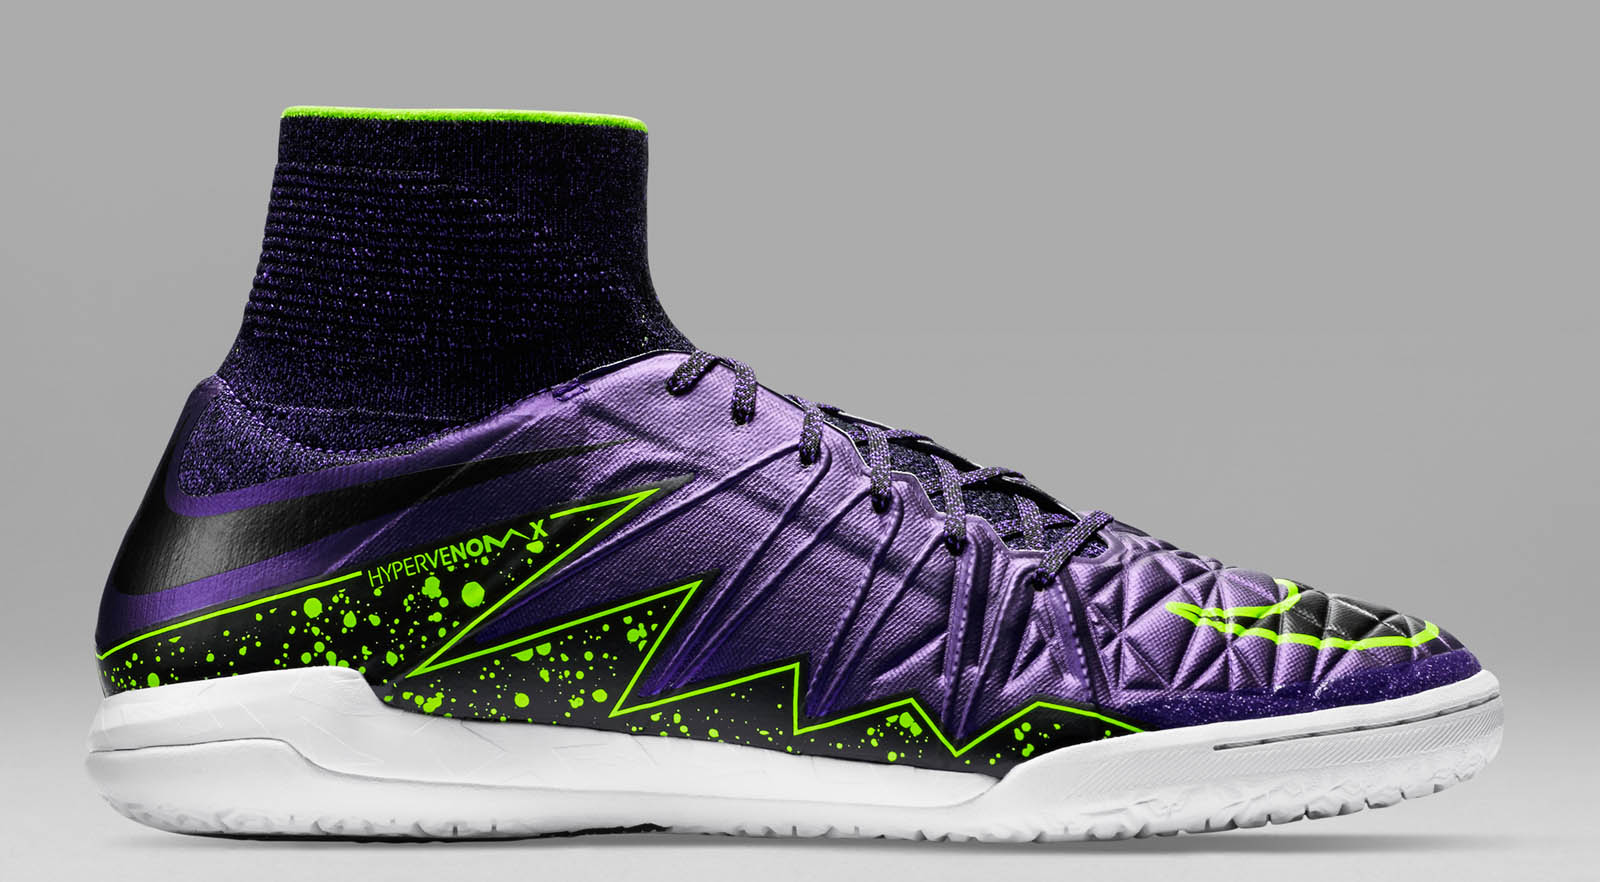 hyper grape nike hypervenomx proximo 2015 2016 boots. Black Bedroom Furniture Sets. Home Design Ideas